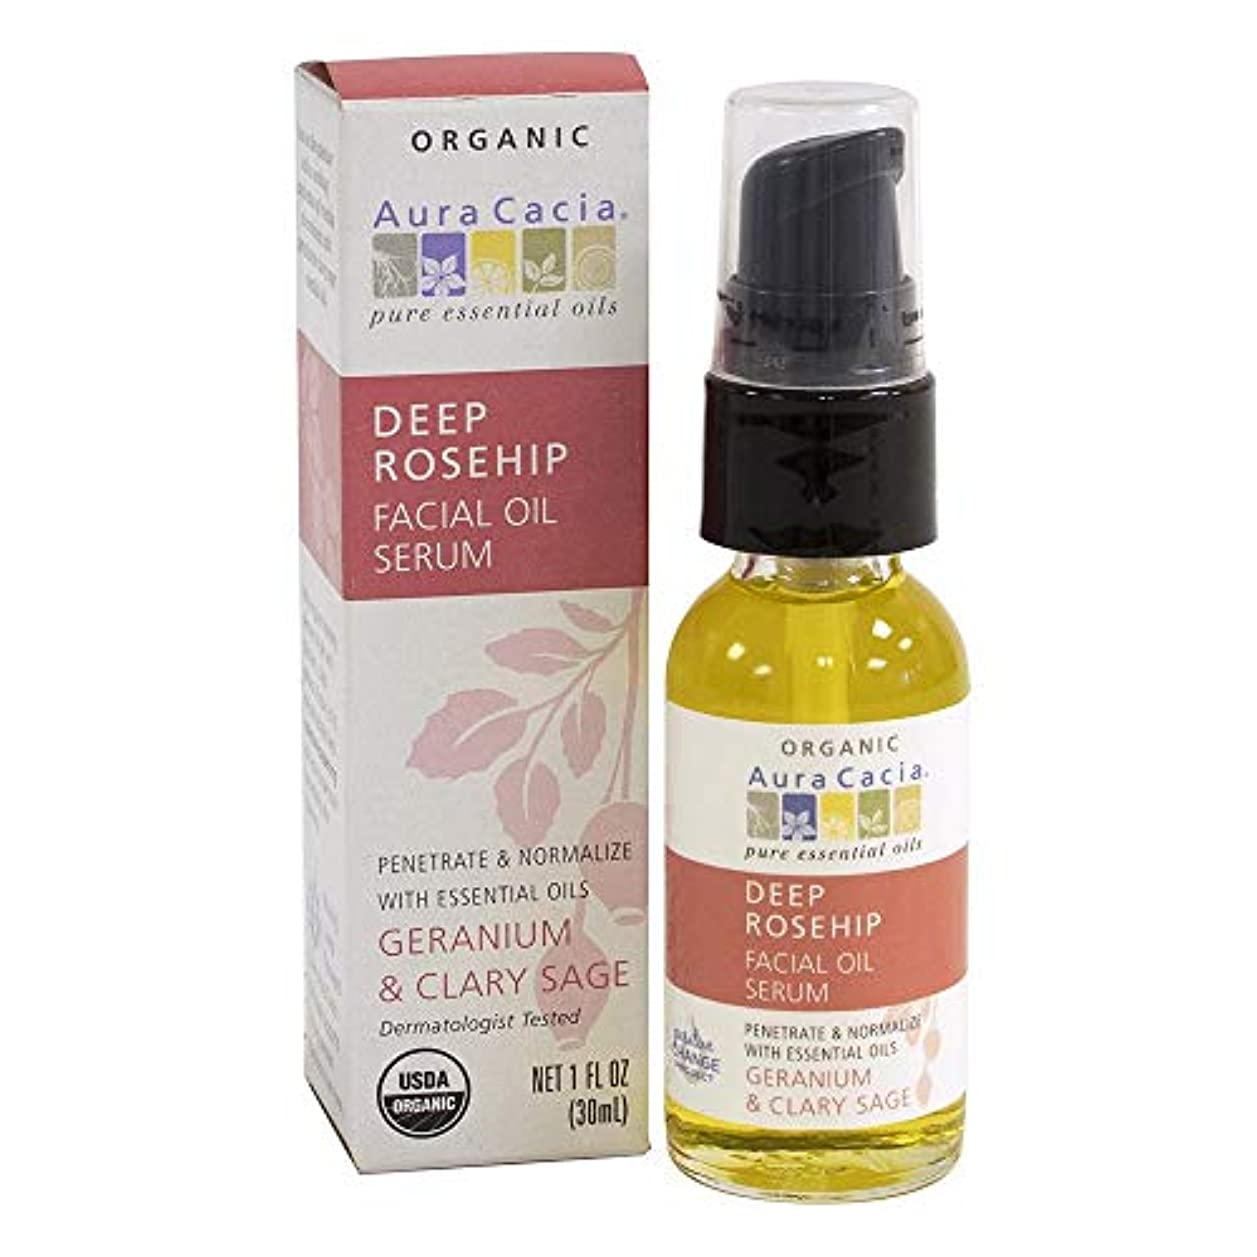 ロゴレイ検閲Aura Cacia, Organic Deep Rosehip Essentials Facial Oil Serum, Geranium & Clary Sage, 1 fl oz (30 ml)